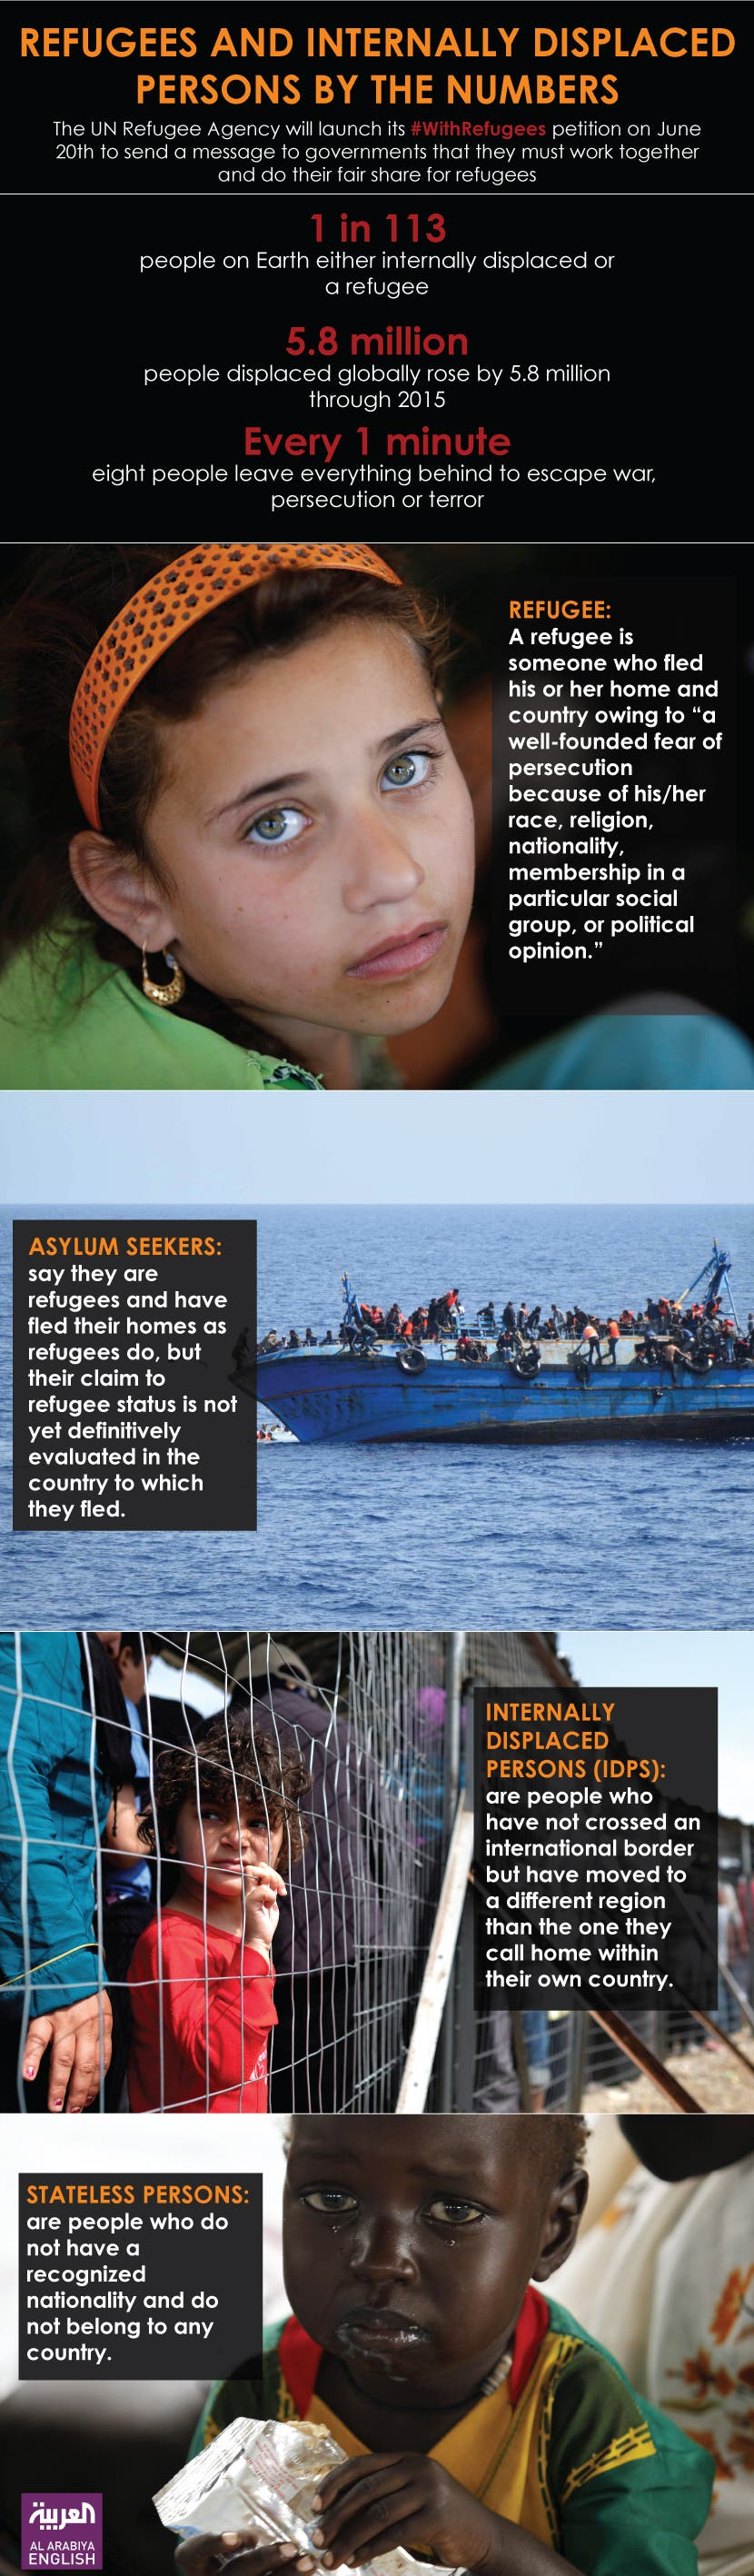 Infographic: Refugees and Internally Displaced Persons by the numbers